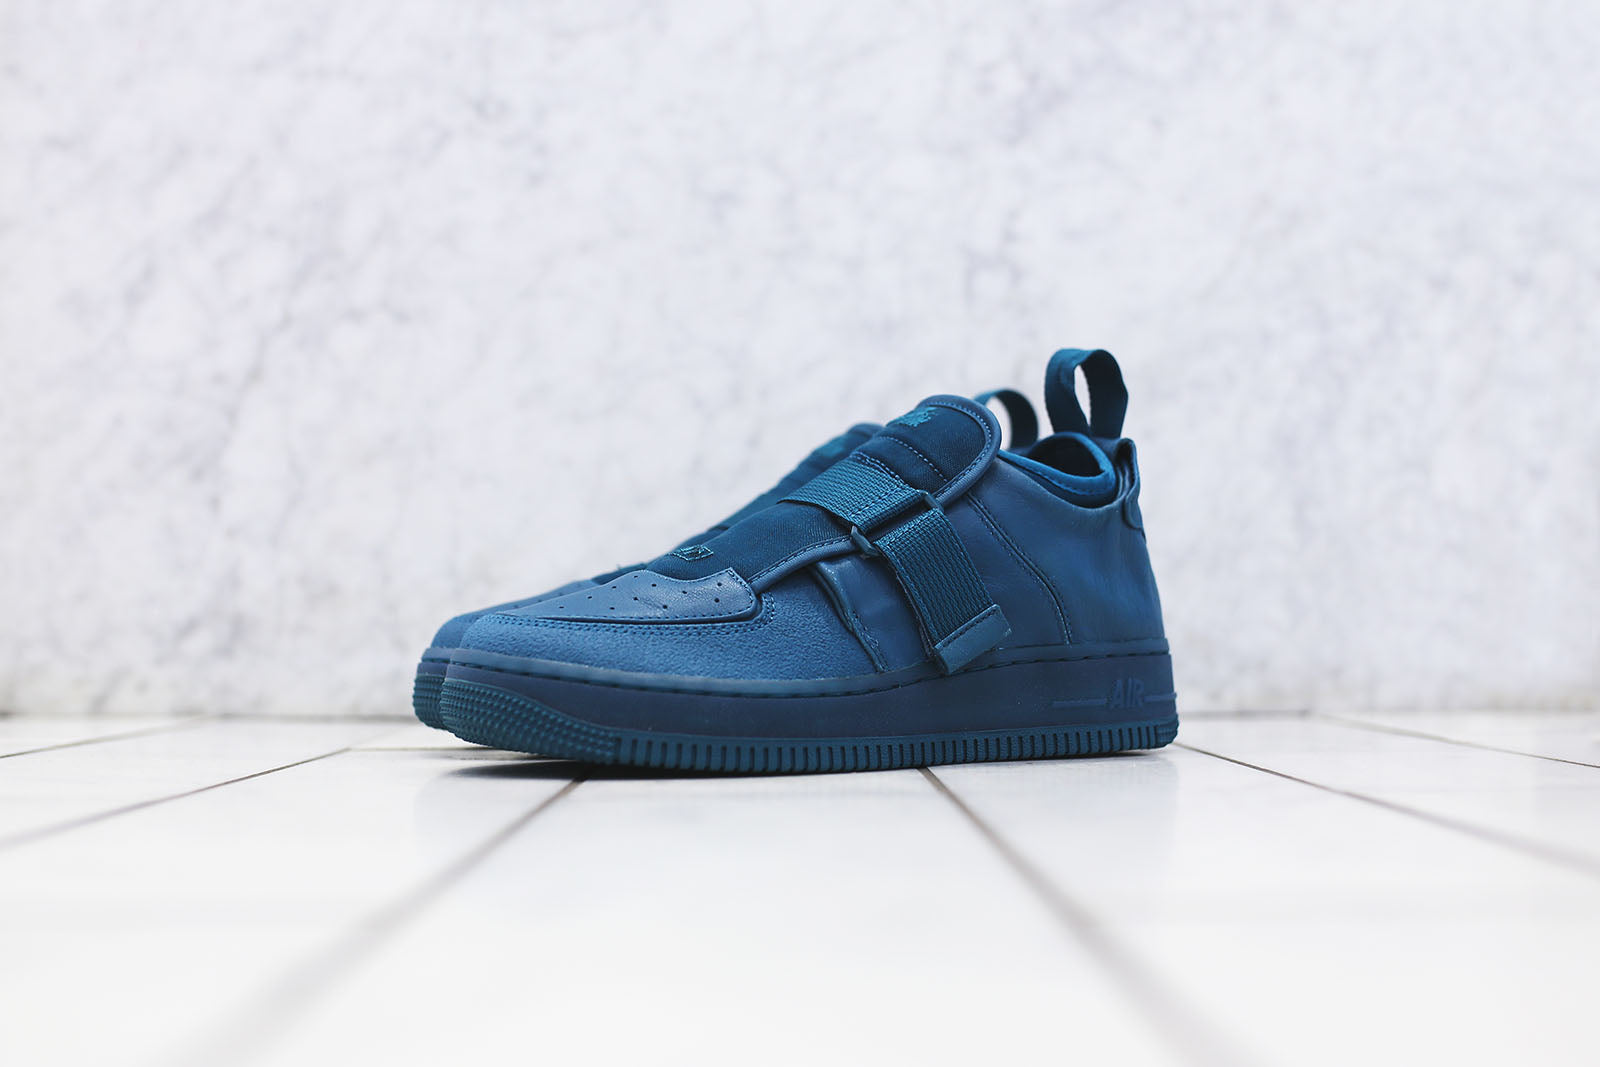 Nike WMNS Air Force 1 Explorer XX - Geode Teal